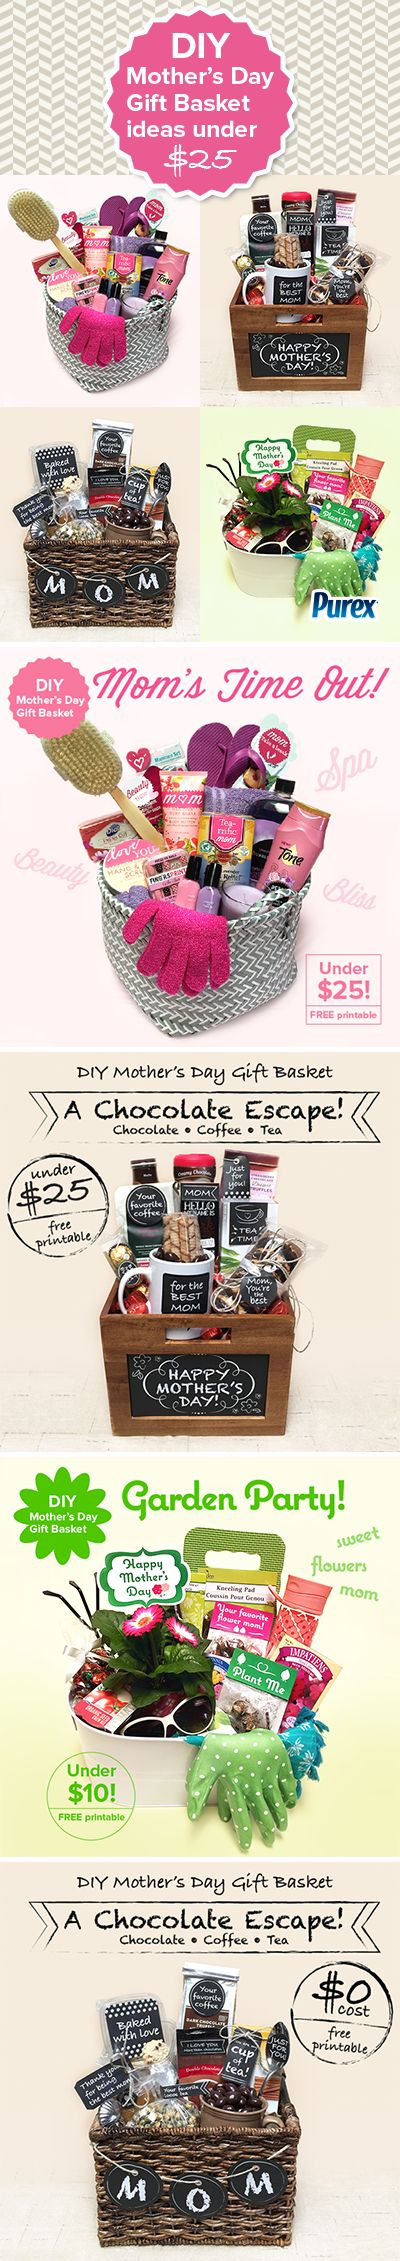 Best 25+ Mothers day baskets ideas on Pinterest | DIY Mother\'s day ...